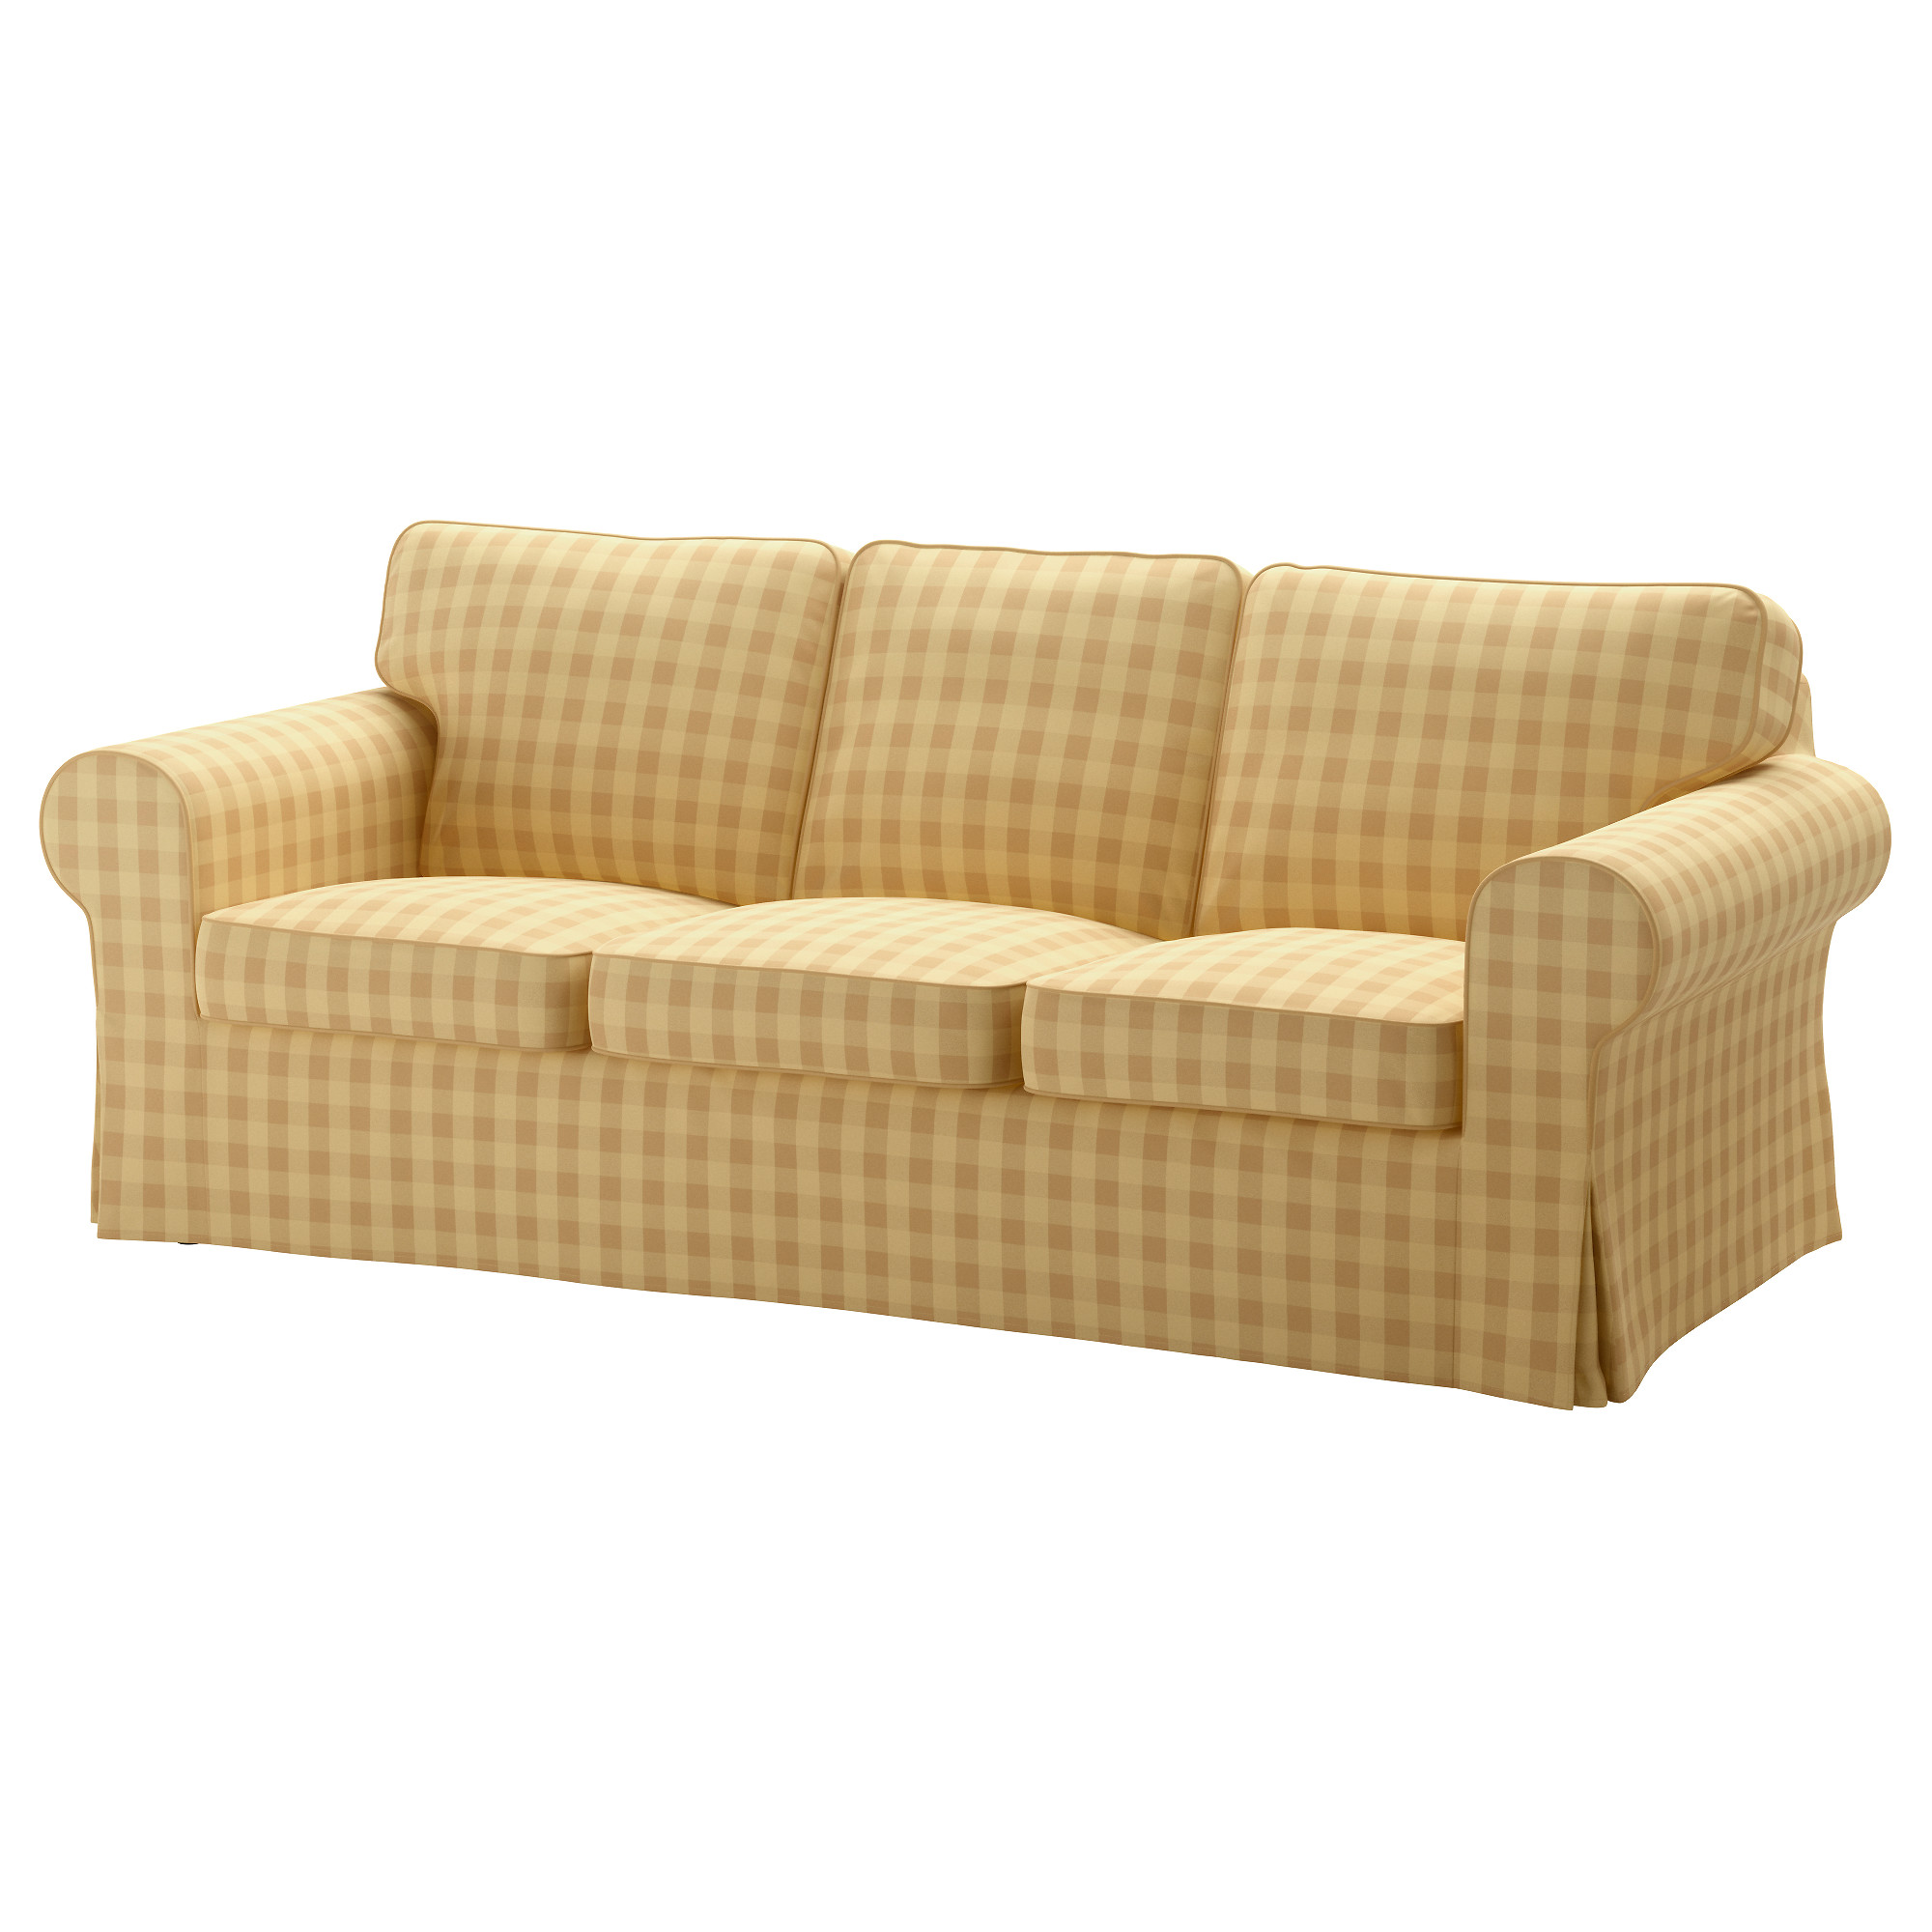 All sofas IKEA